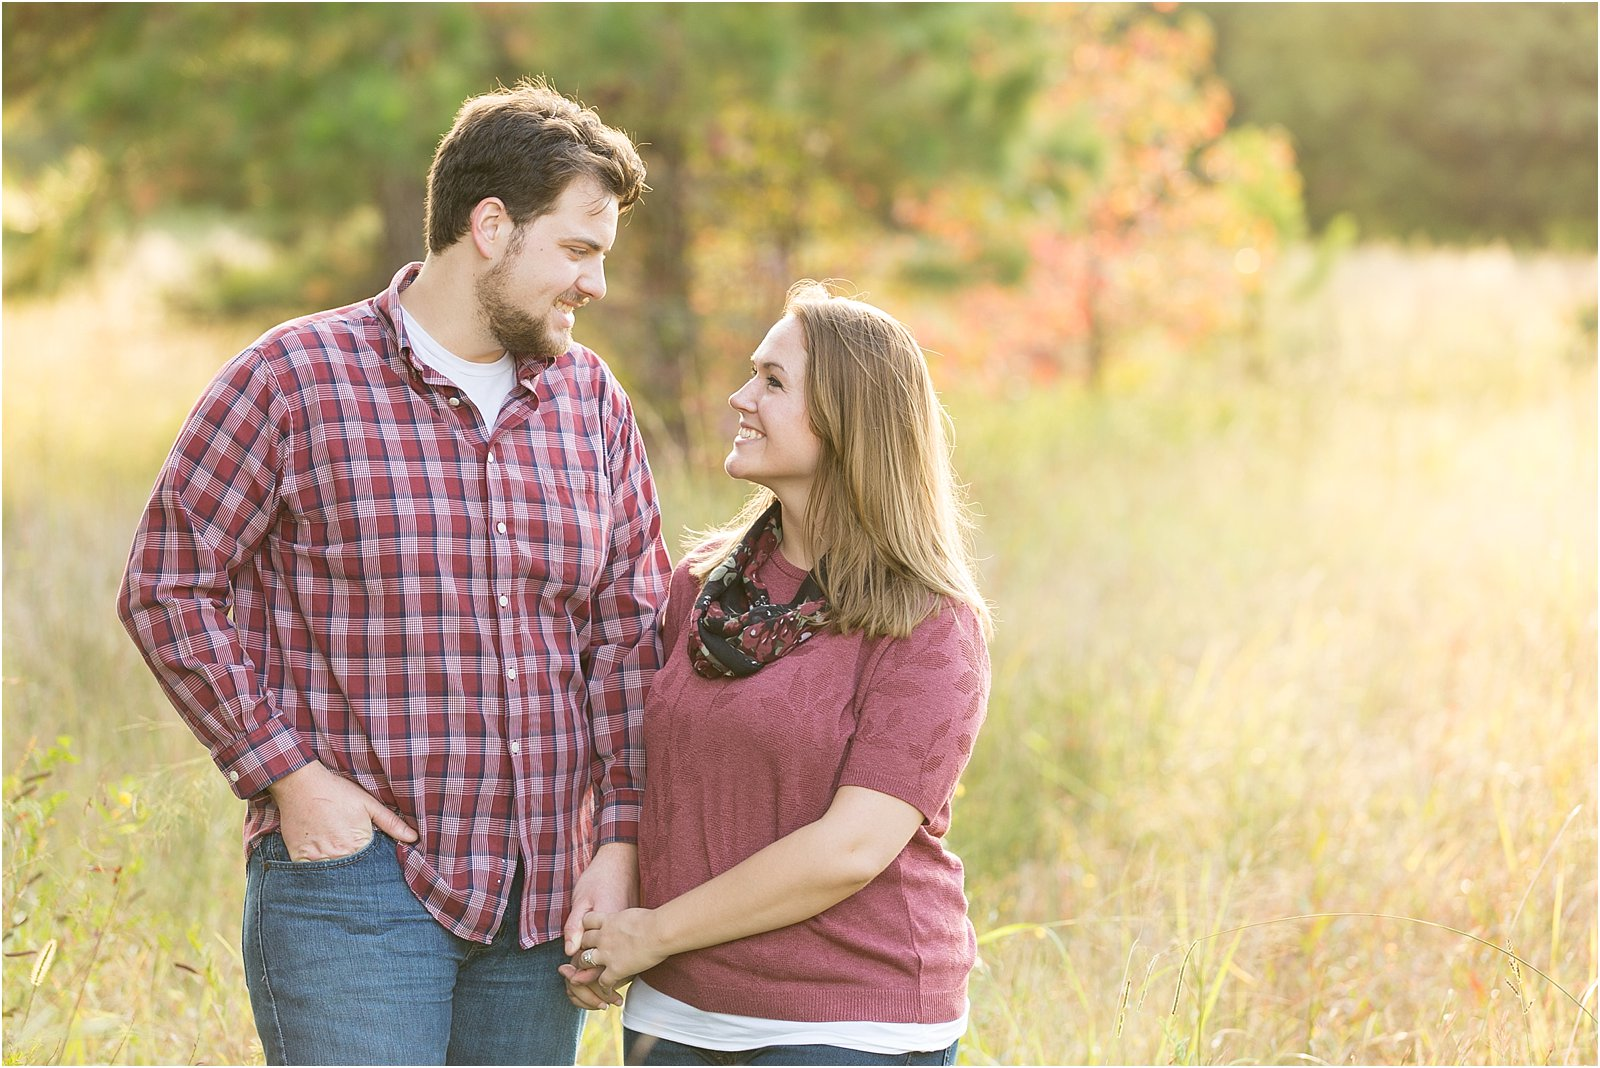 jessica_ryan_photography_pumpkin_patch_engagement_portraits_fall_october_engagements_virginia_beach_chesapeake_0296